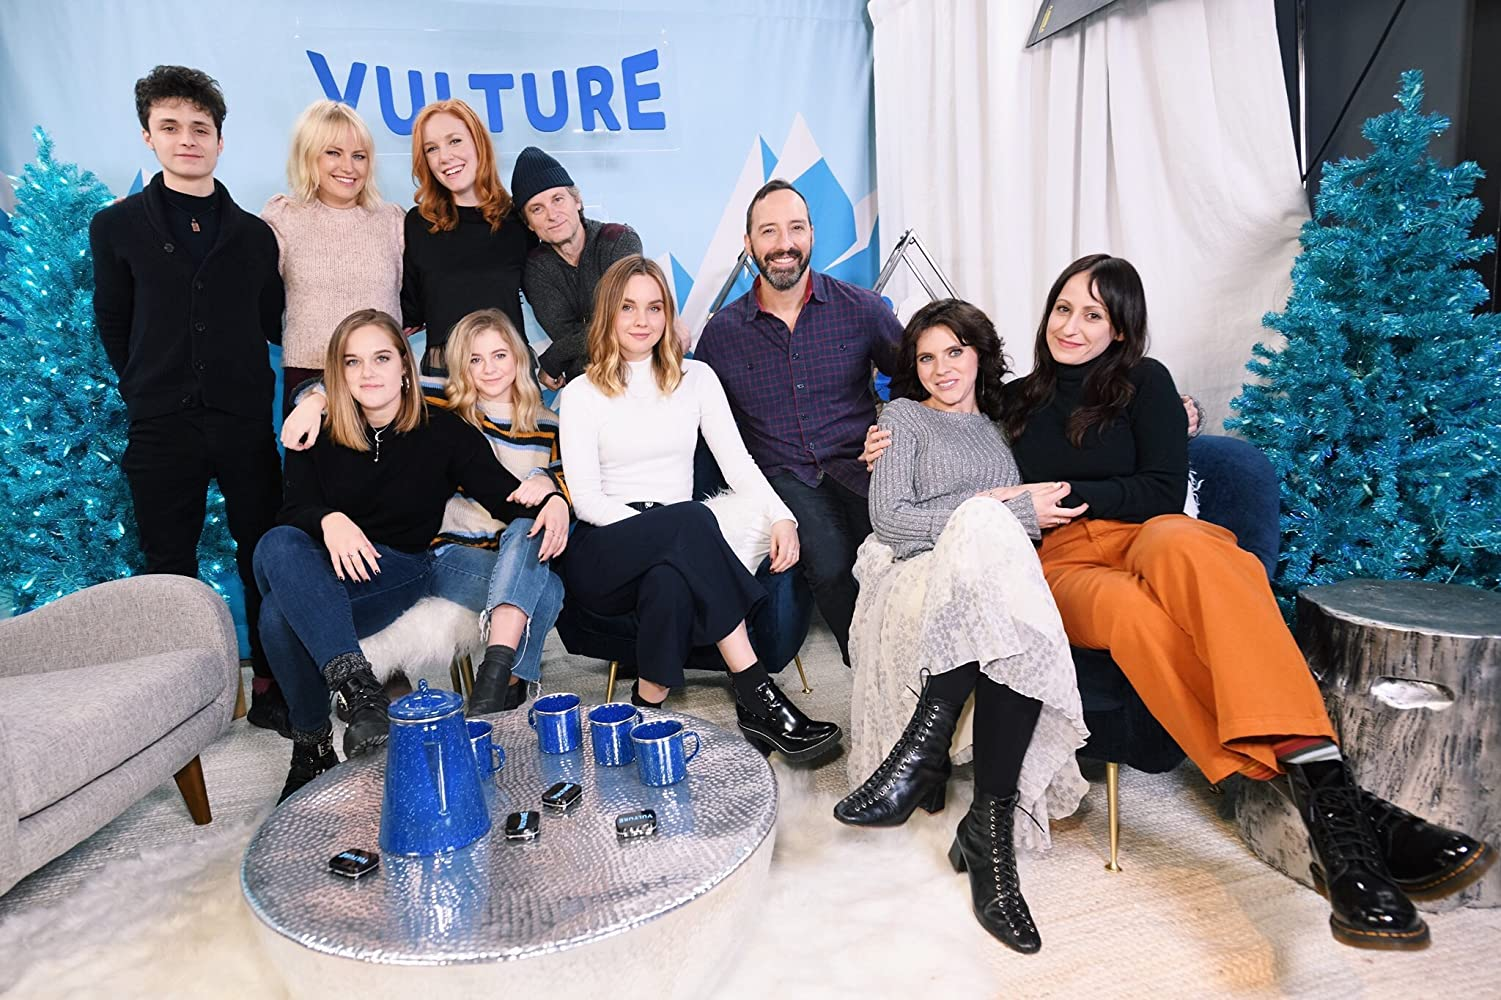 The Vulture Spot at Sundance- DAY 1